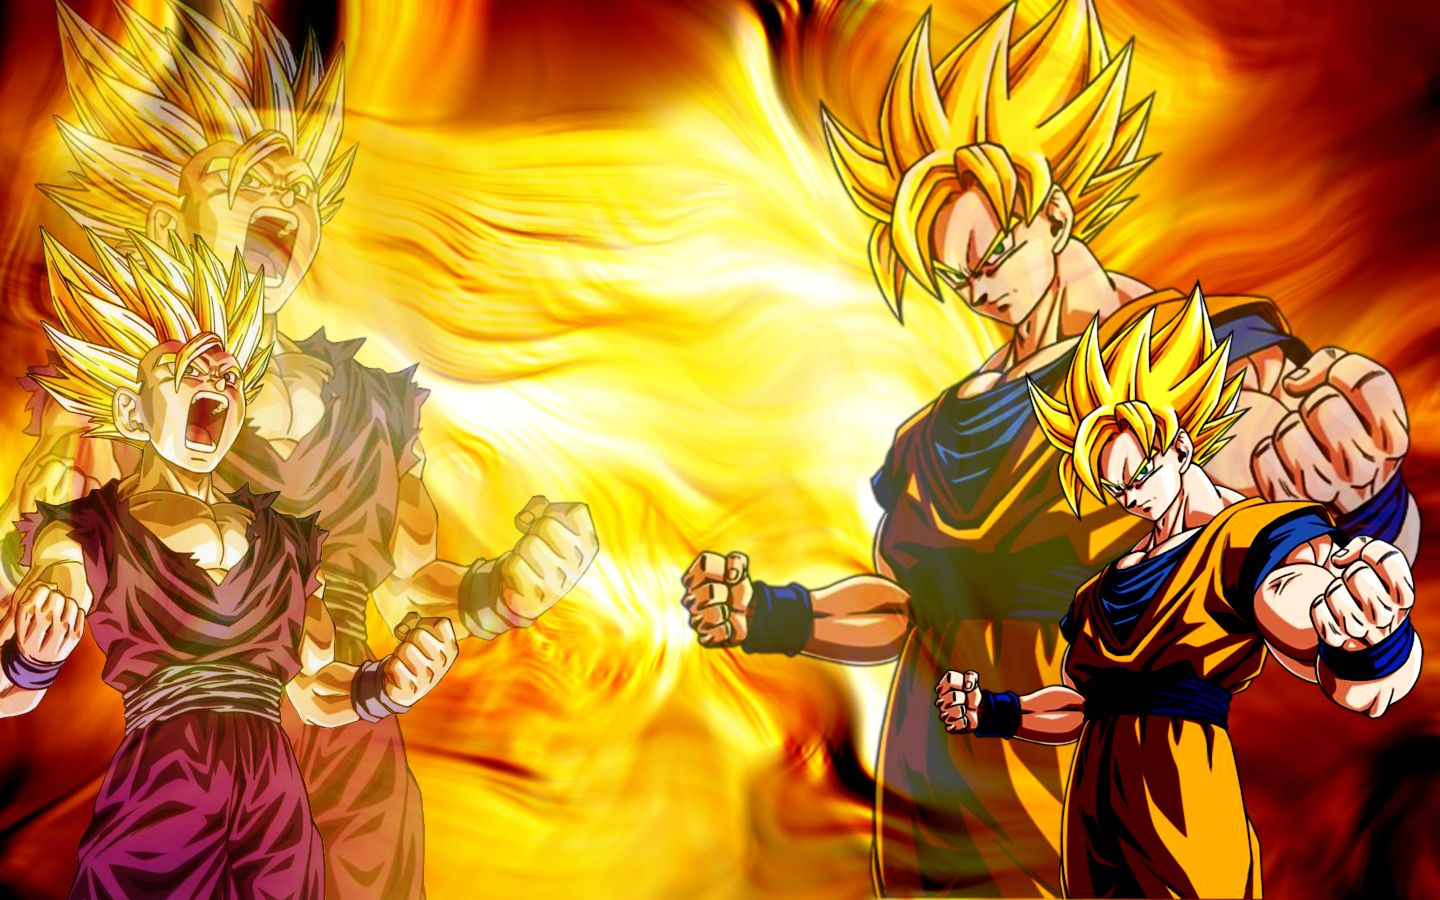 Free Background Pictures Of Dragon Ball Z Goku And Gohan Goku